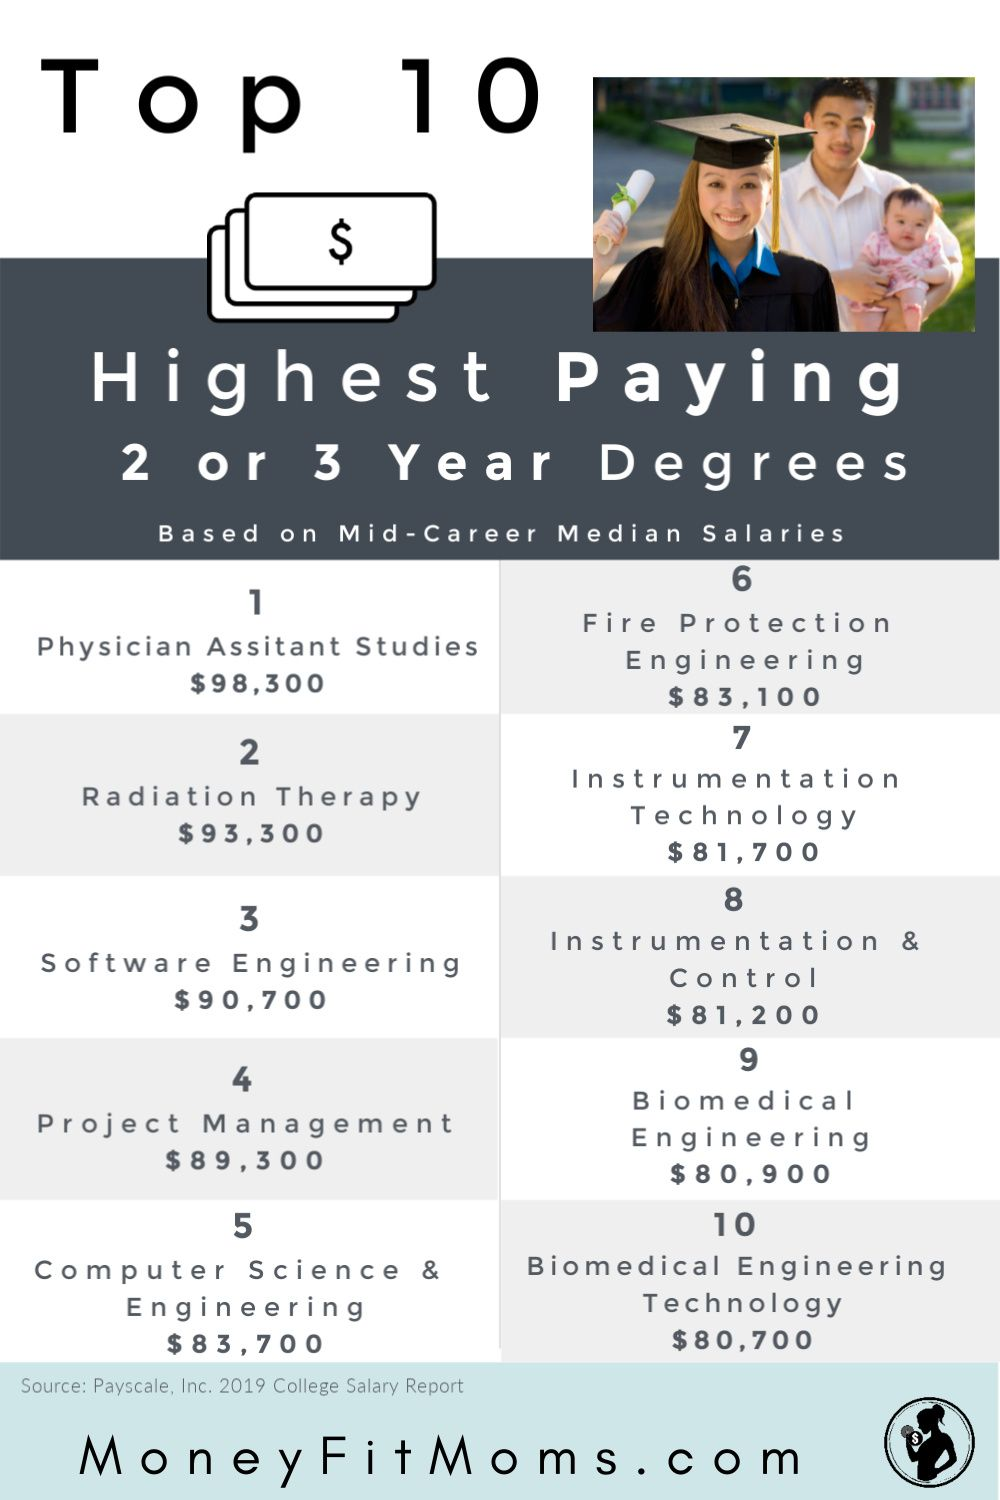 High Paying Job With 2 Year Degree